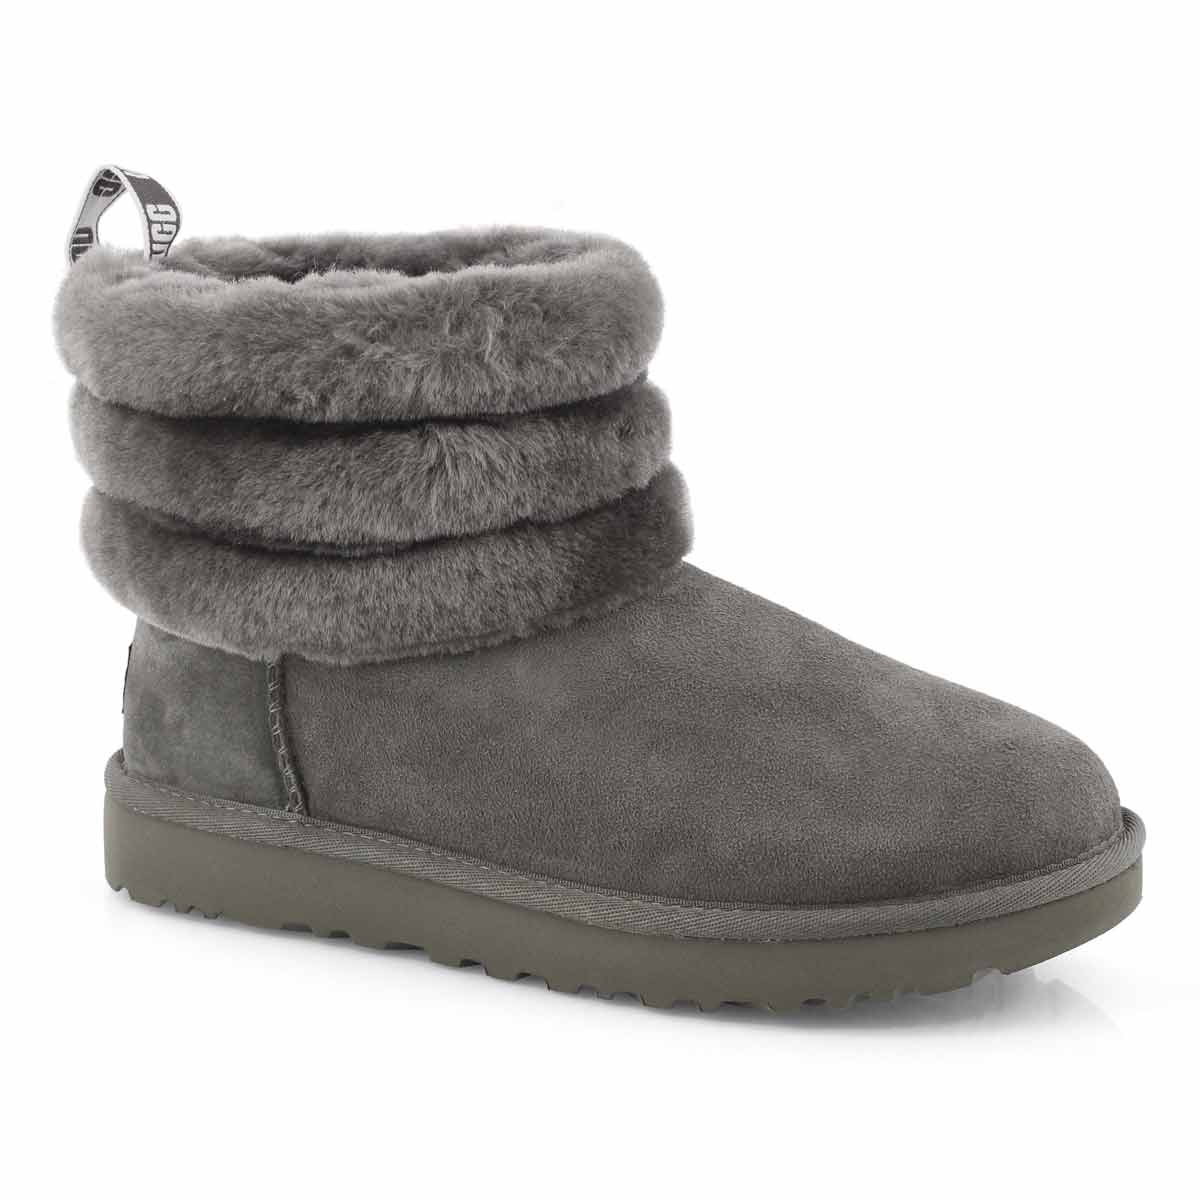 Lds Fluff Mini Quilted char shpskn boot